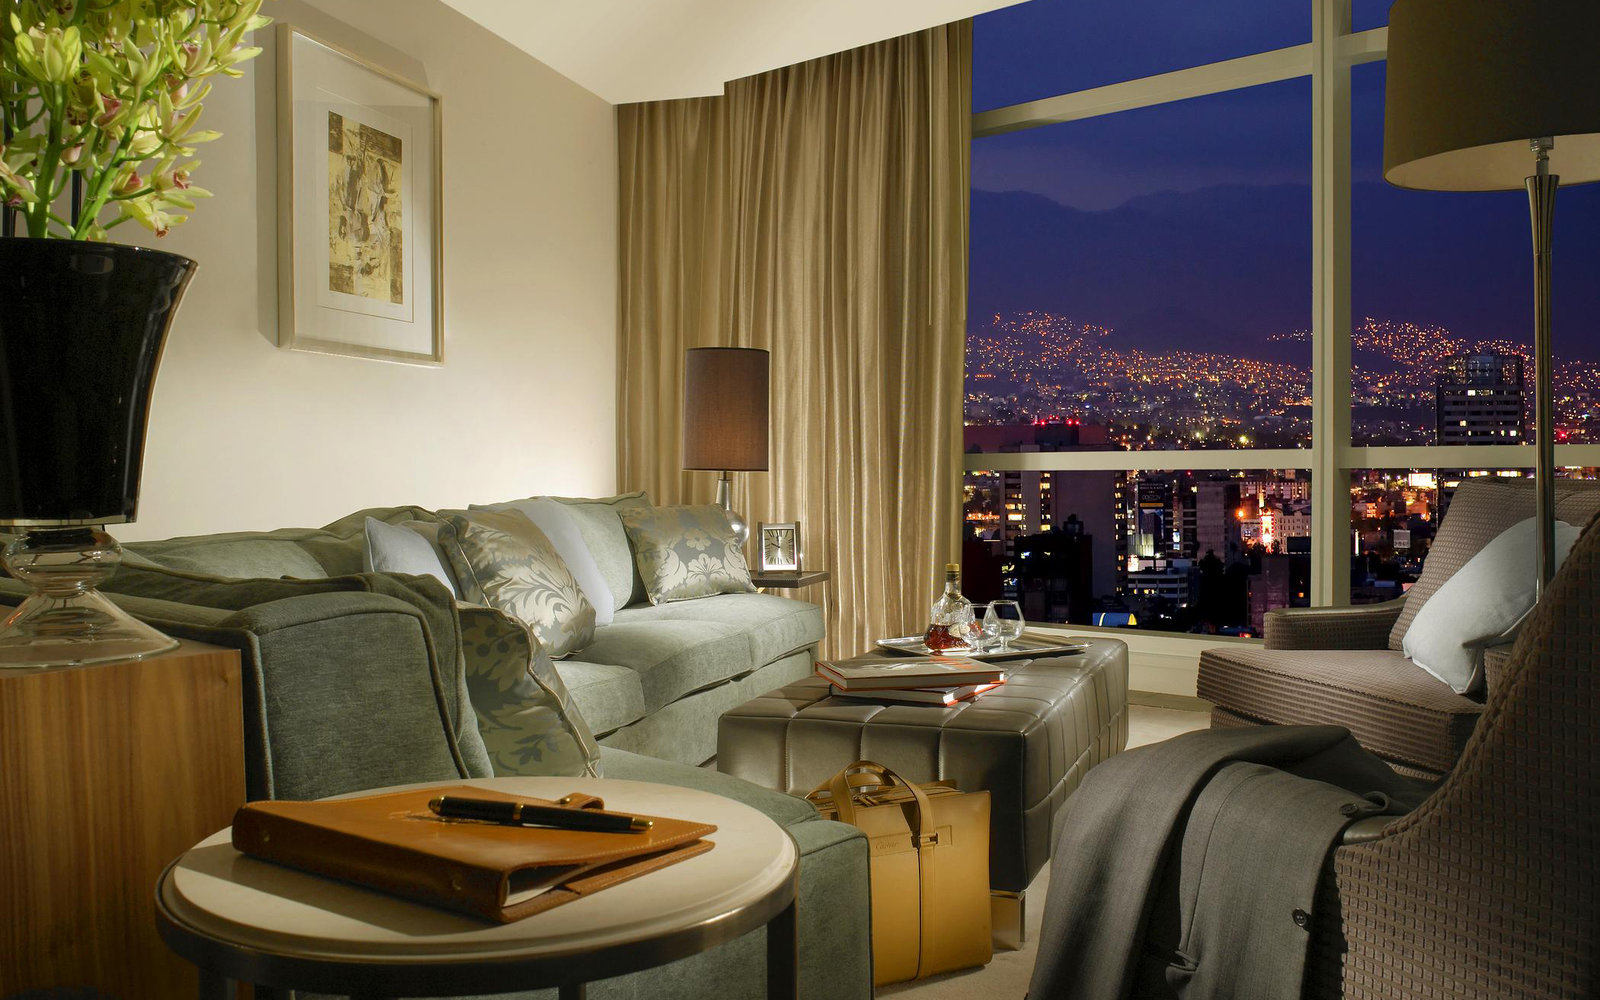 No. 1: The St. Regis Mexico City